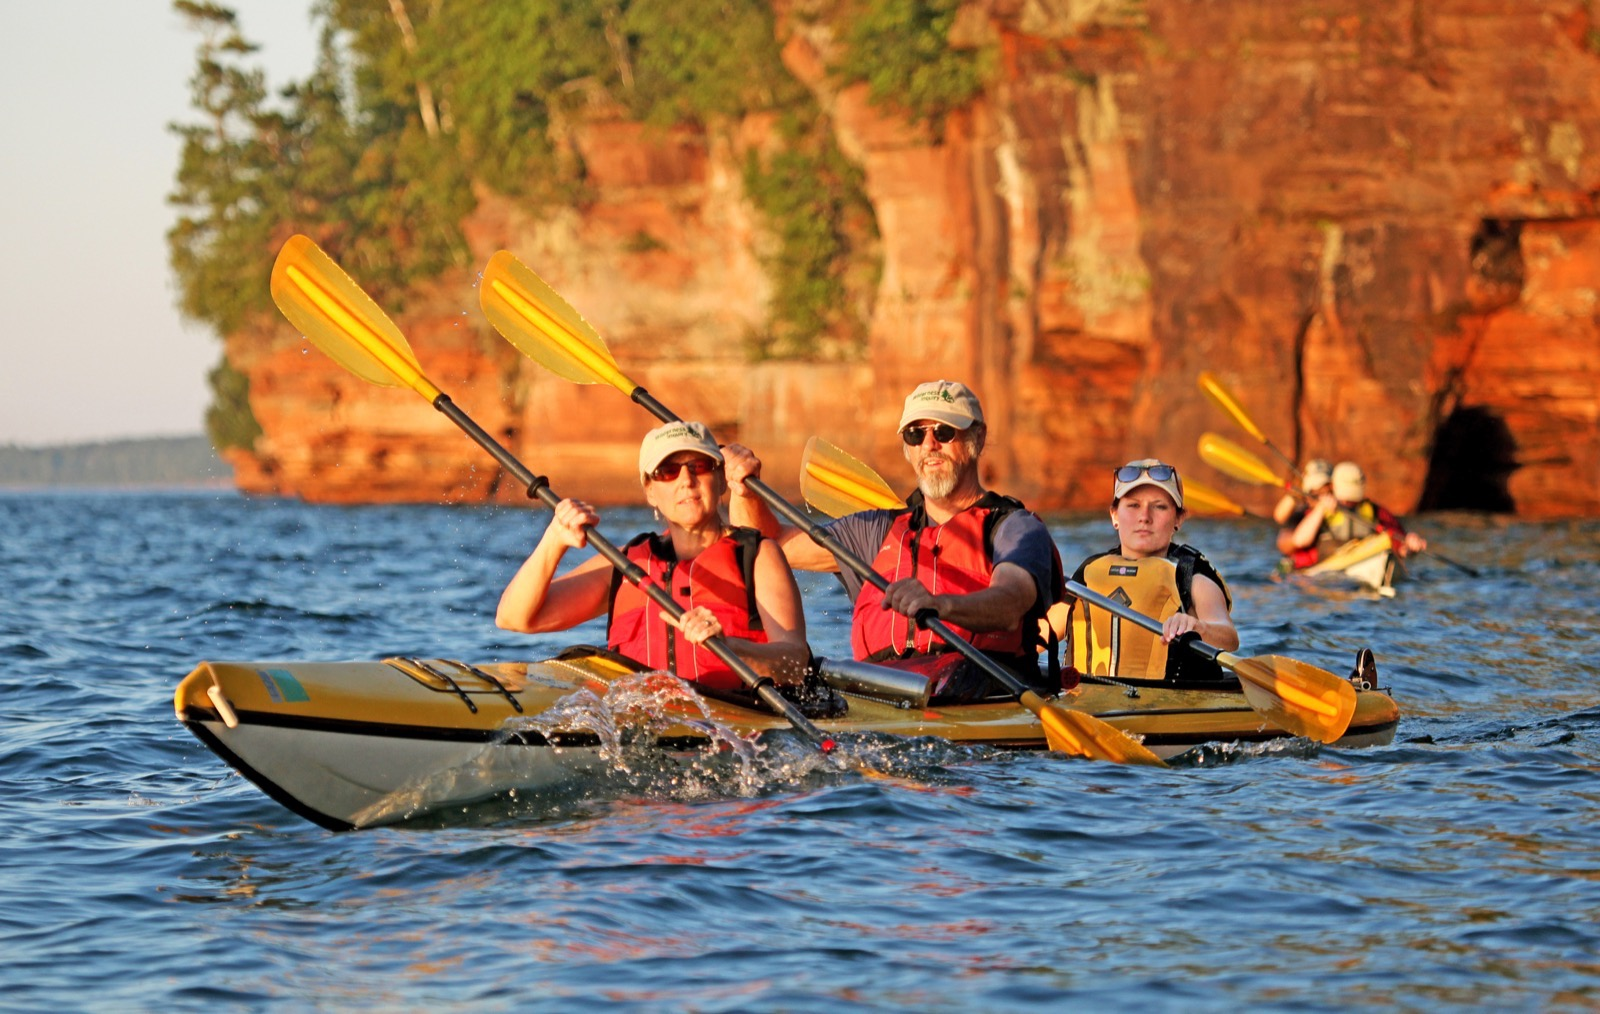 Three kayakers in a yellow kayak paddle on the lake with red sandstone cliffs in the background.